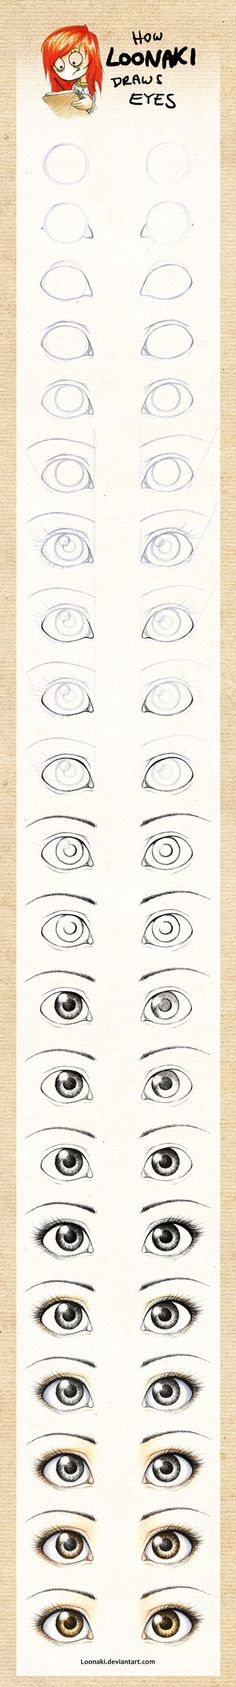 How to draws eyes, drawing eyes tutorial, drawing lesson                                                                                                                                                      Más